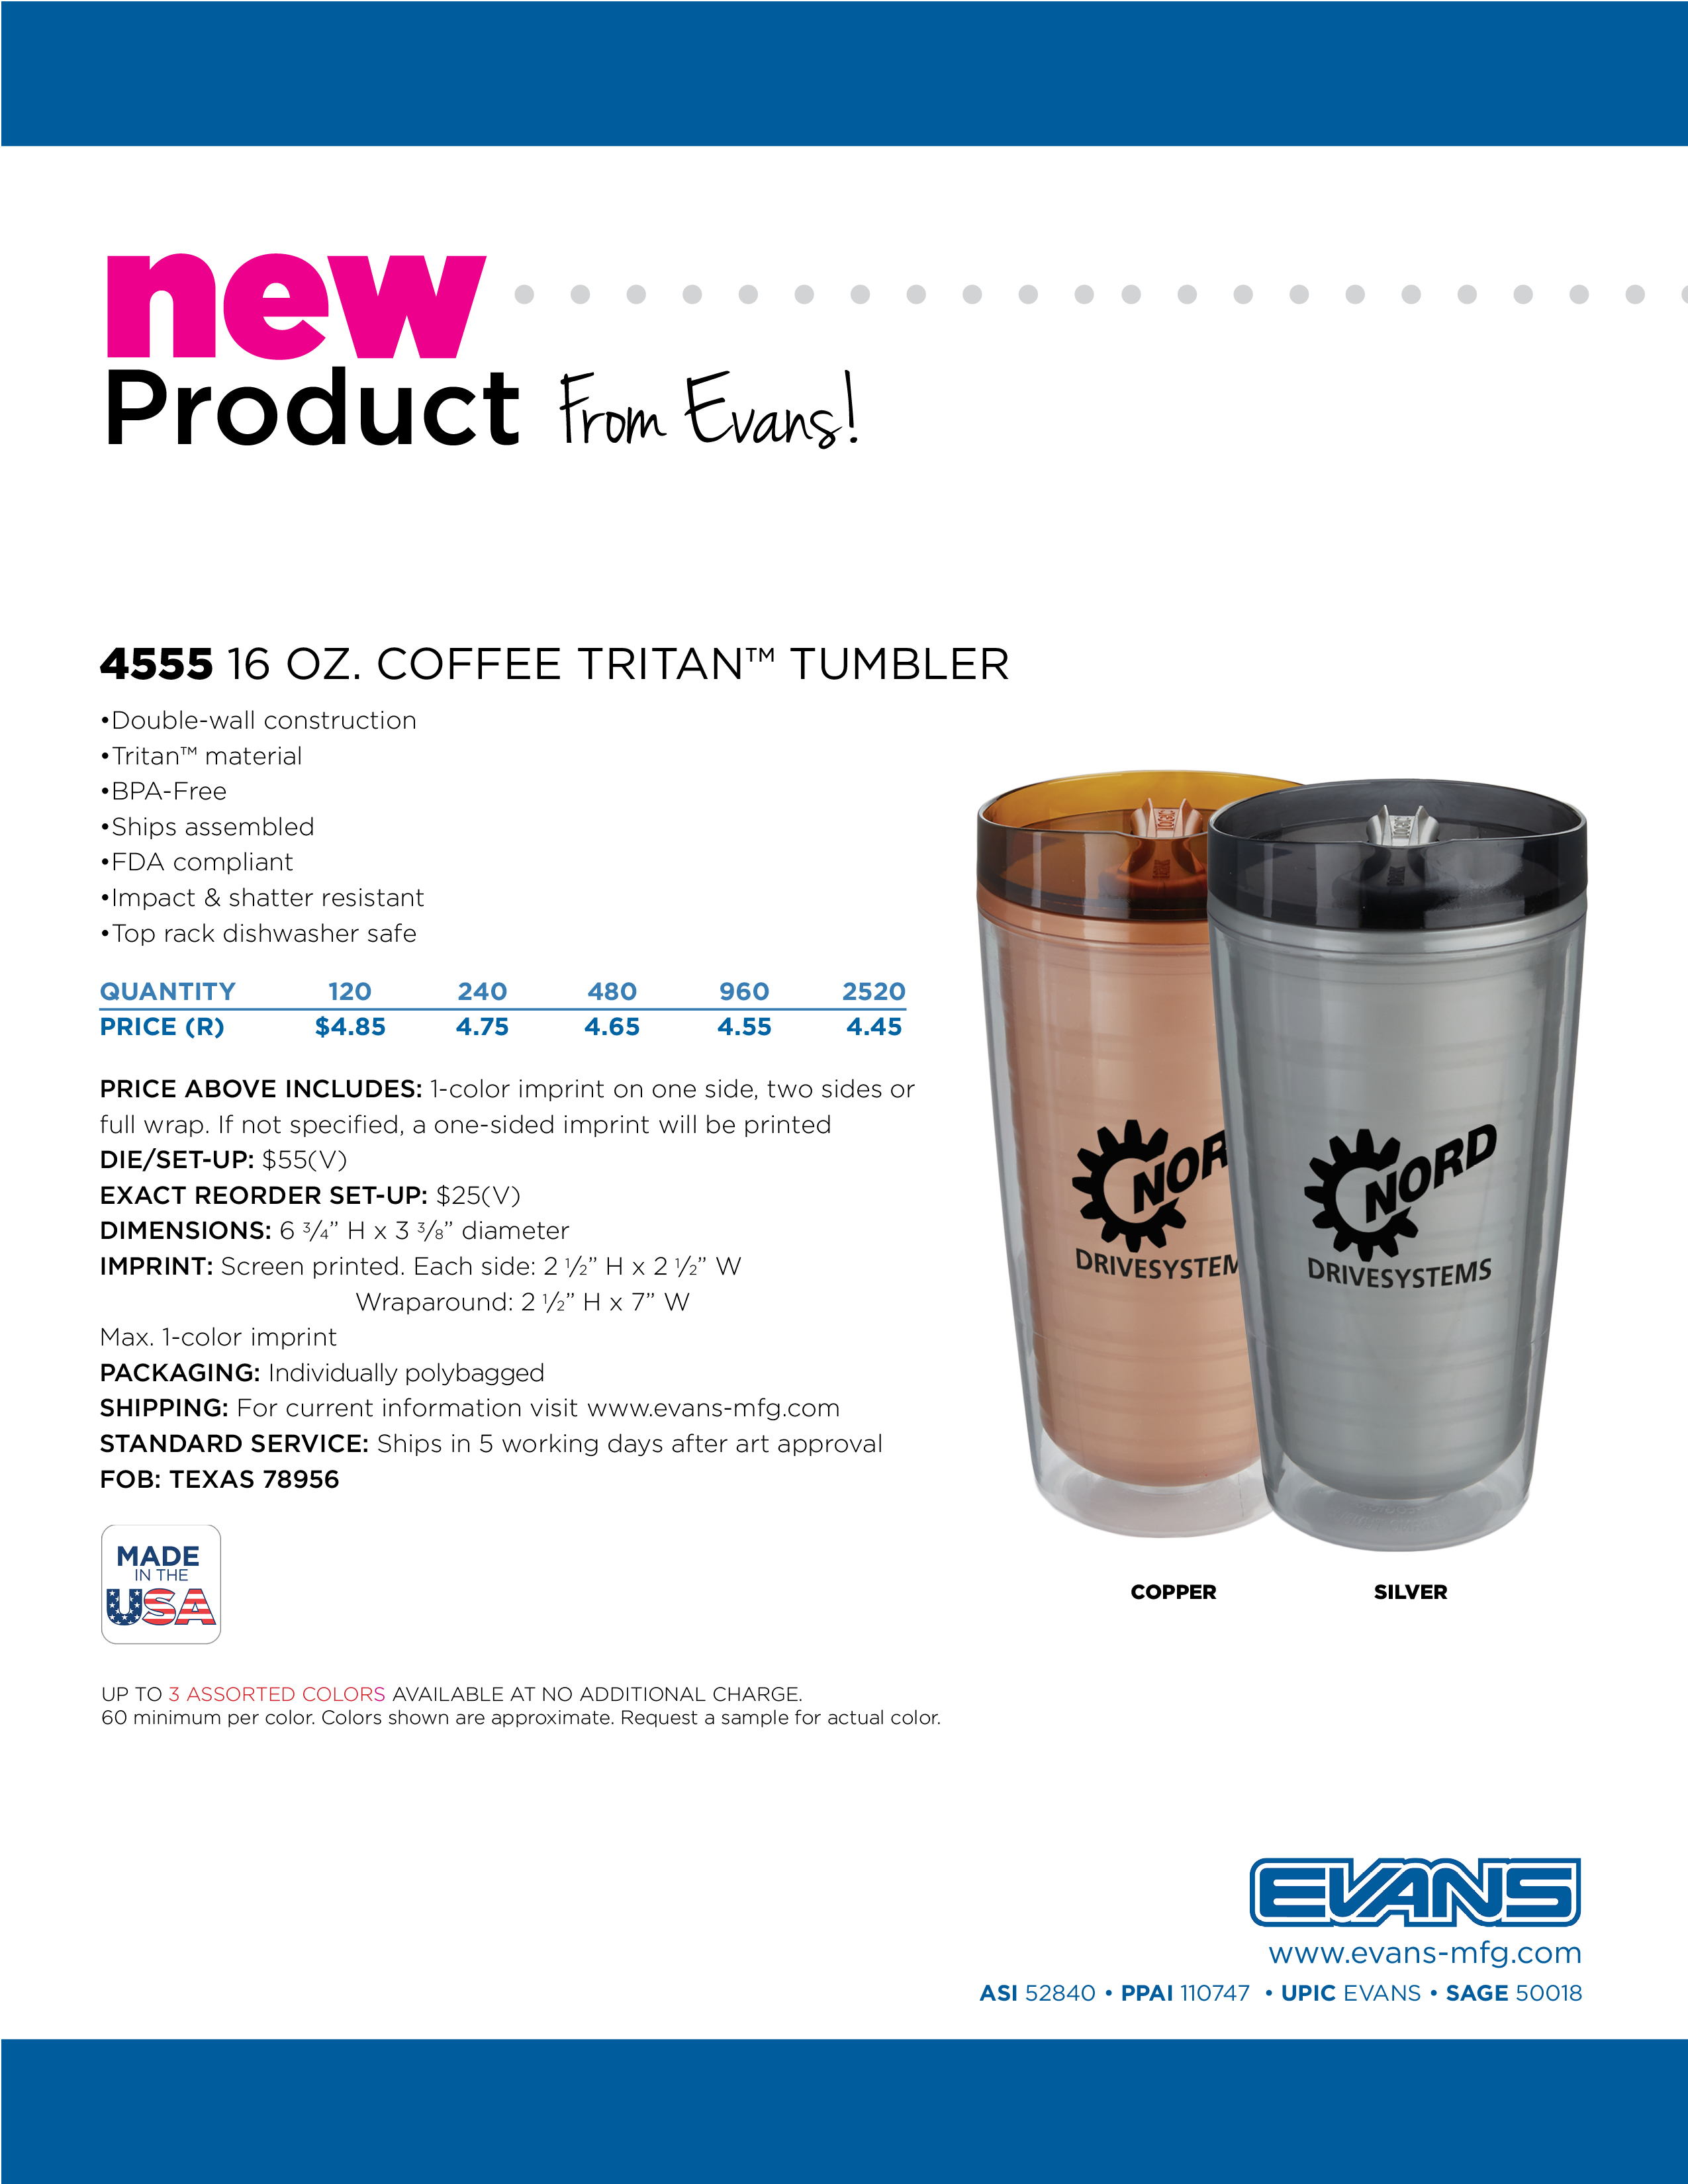 4555 16 oz. Coffee Tritan Tumbler